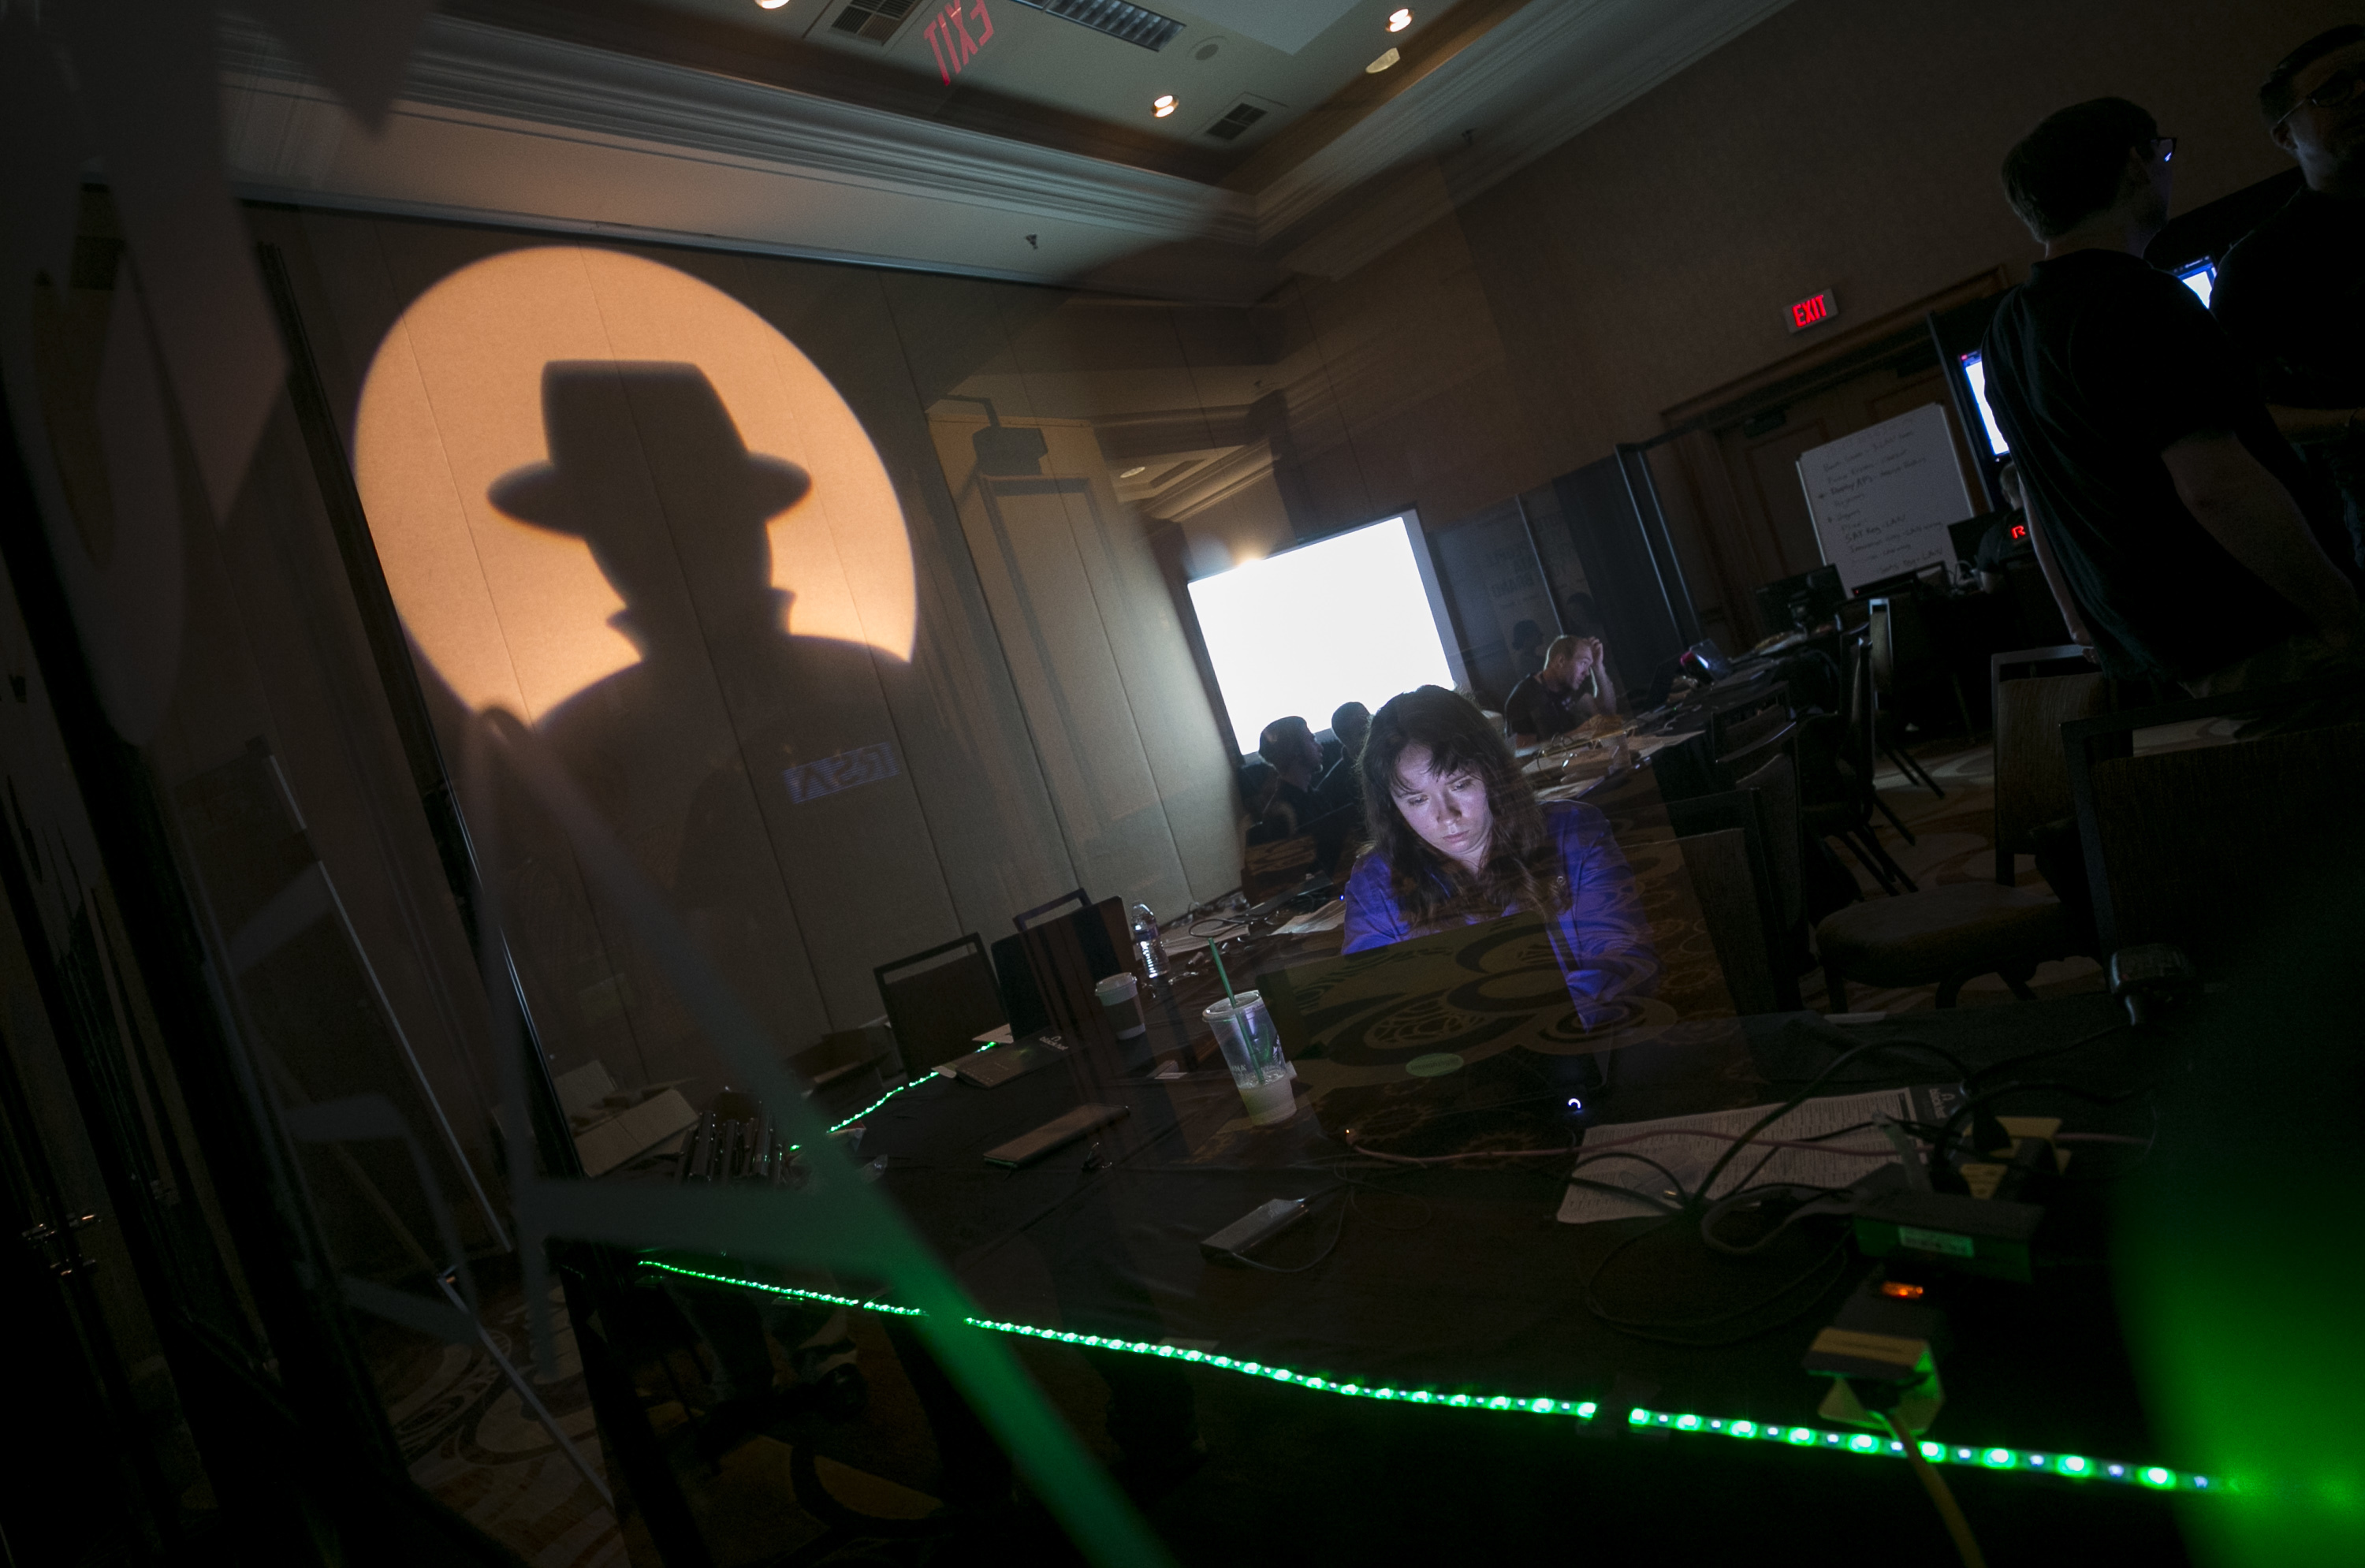 A Black Hat tech associate works in the network operating center (NOC) during the Black Hat information security conference at Mandalay Bay, Wednesday, July 26, 2017, In Las Vegas. Against a backdrop of cyberattacks that have grown into full-fledged sabotage, Facebook chief security officer Alex Stamos brought a sobering message Wednesday to hackers and security experts at the Black Hat conference. (Richard Brian/Las Vegas Review-Journal via AP)